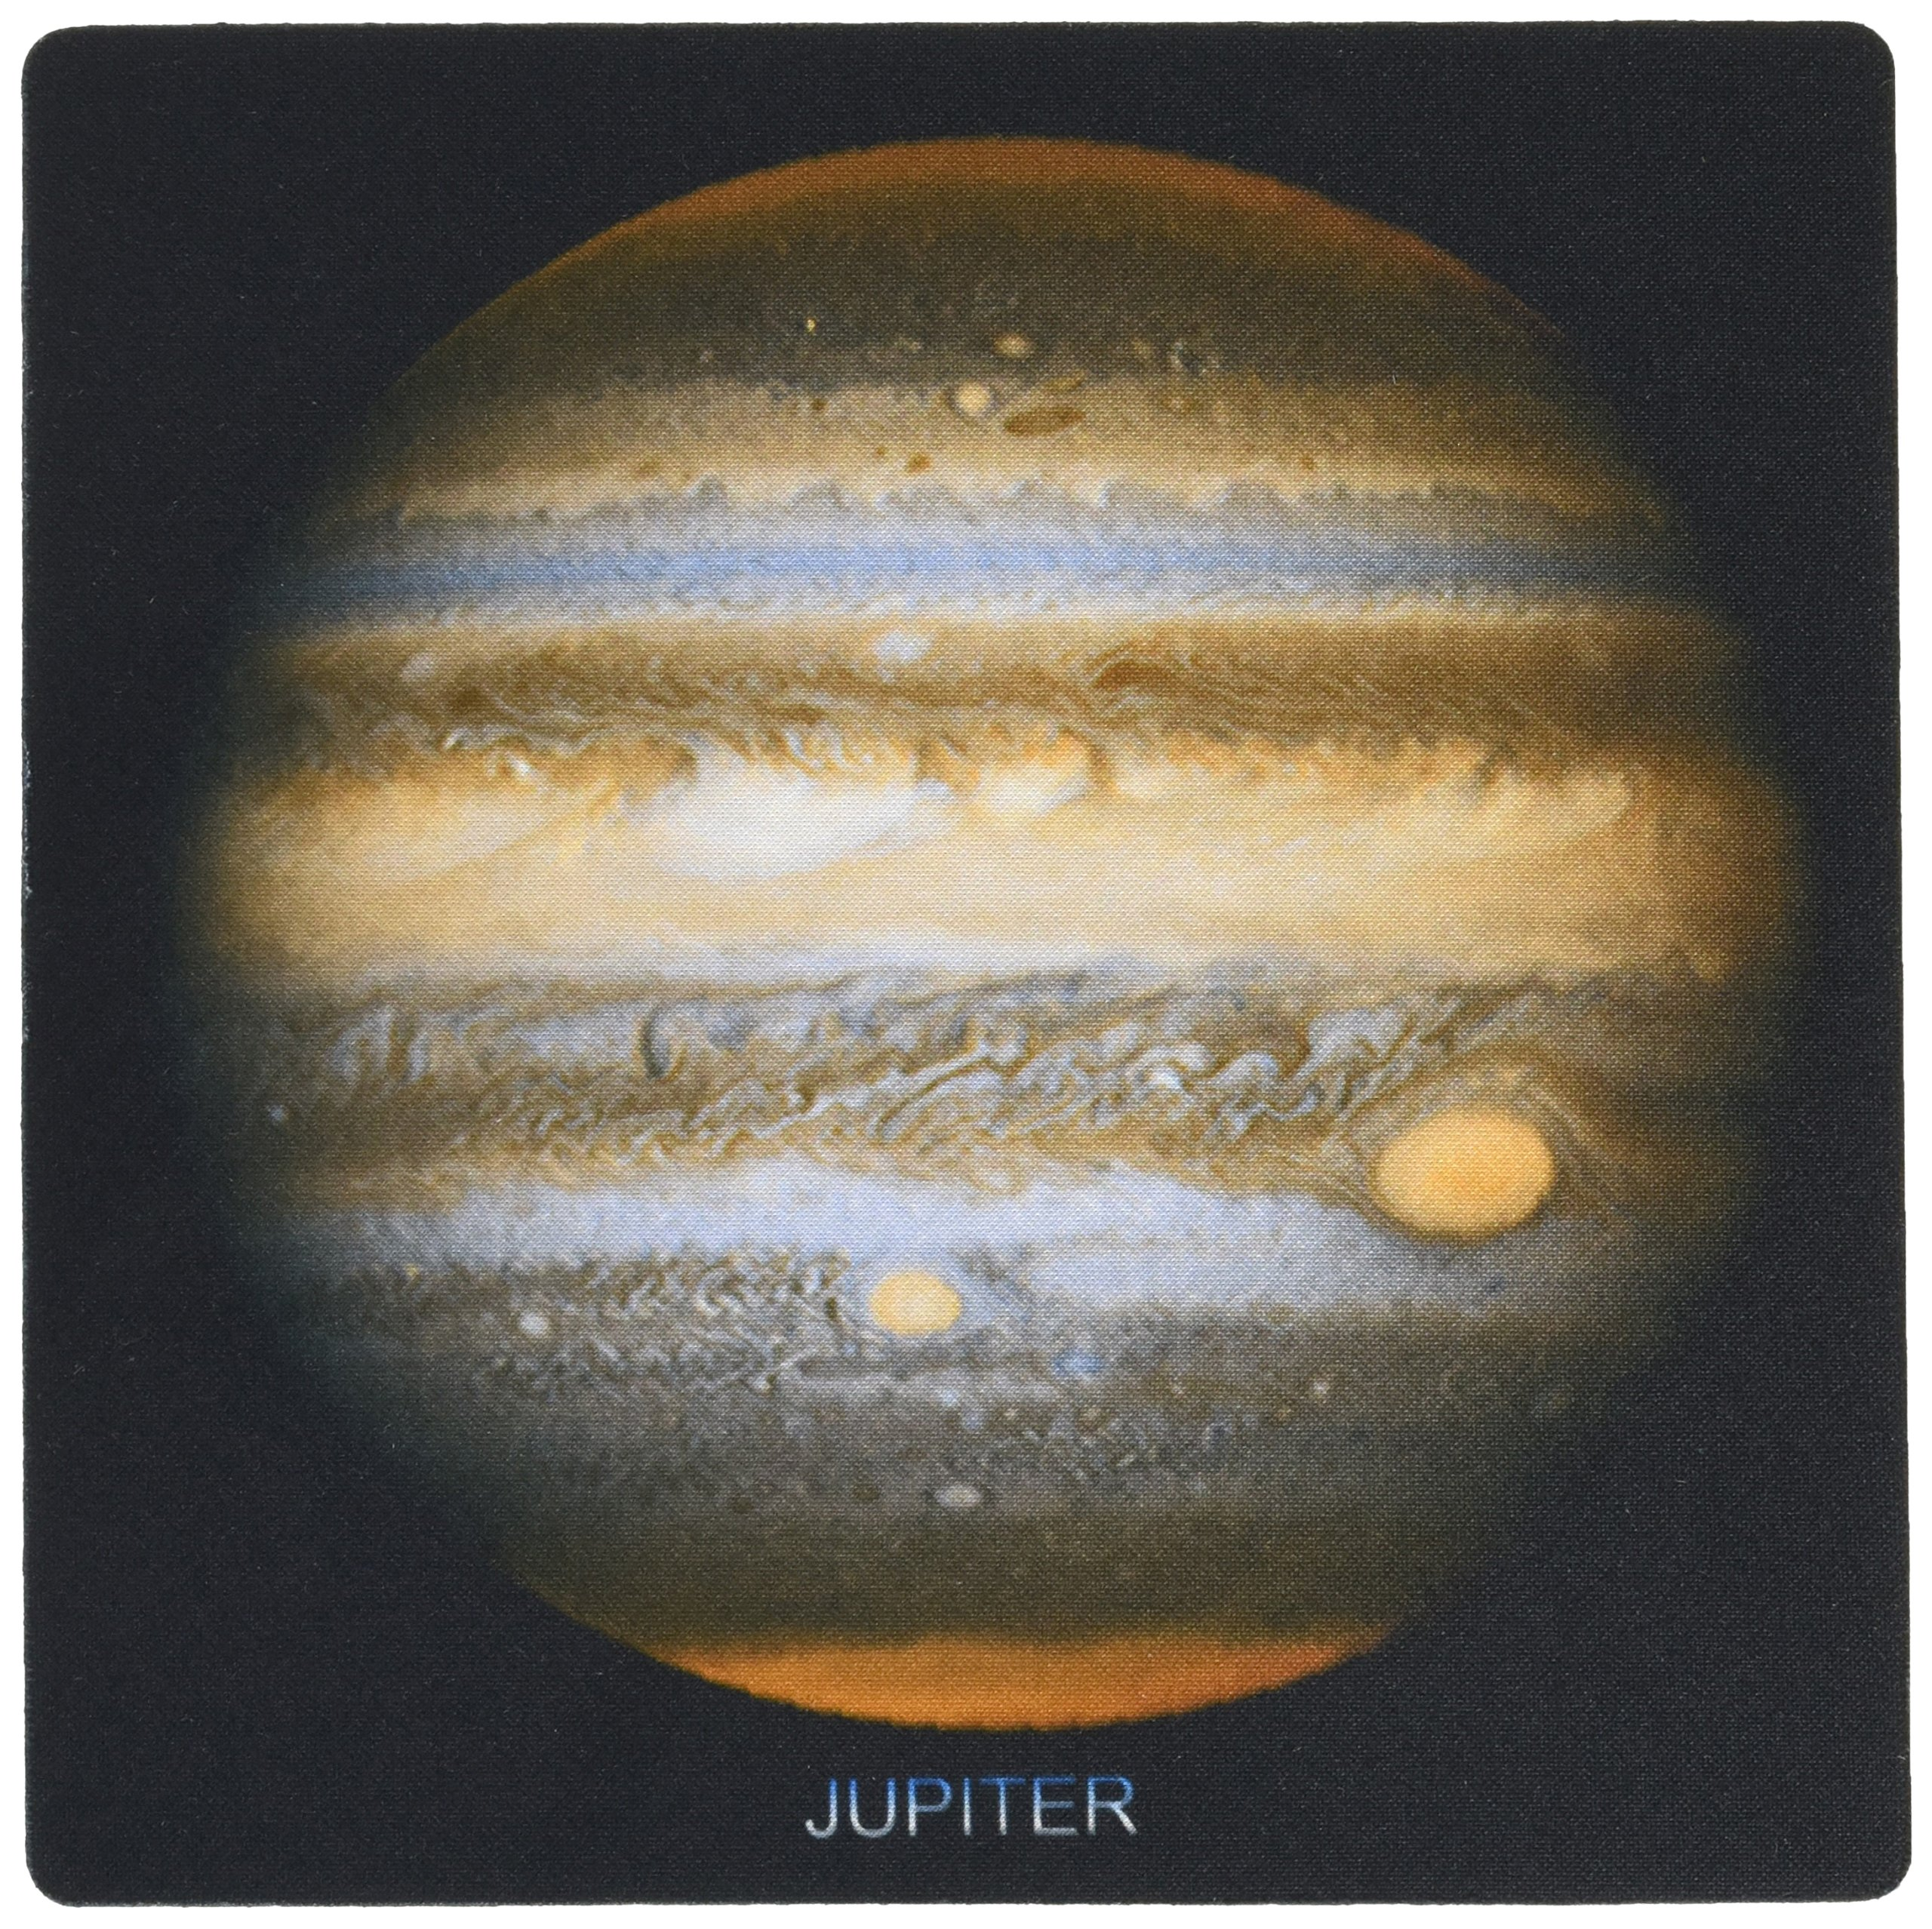 3dRose Solar System - Jupiters New Red Spot - Mouse Pad, 8 by 8 inches (mp_76845_1)